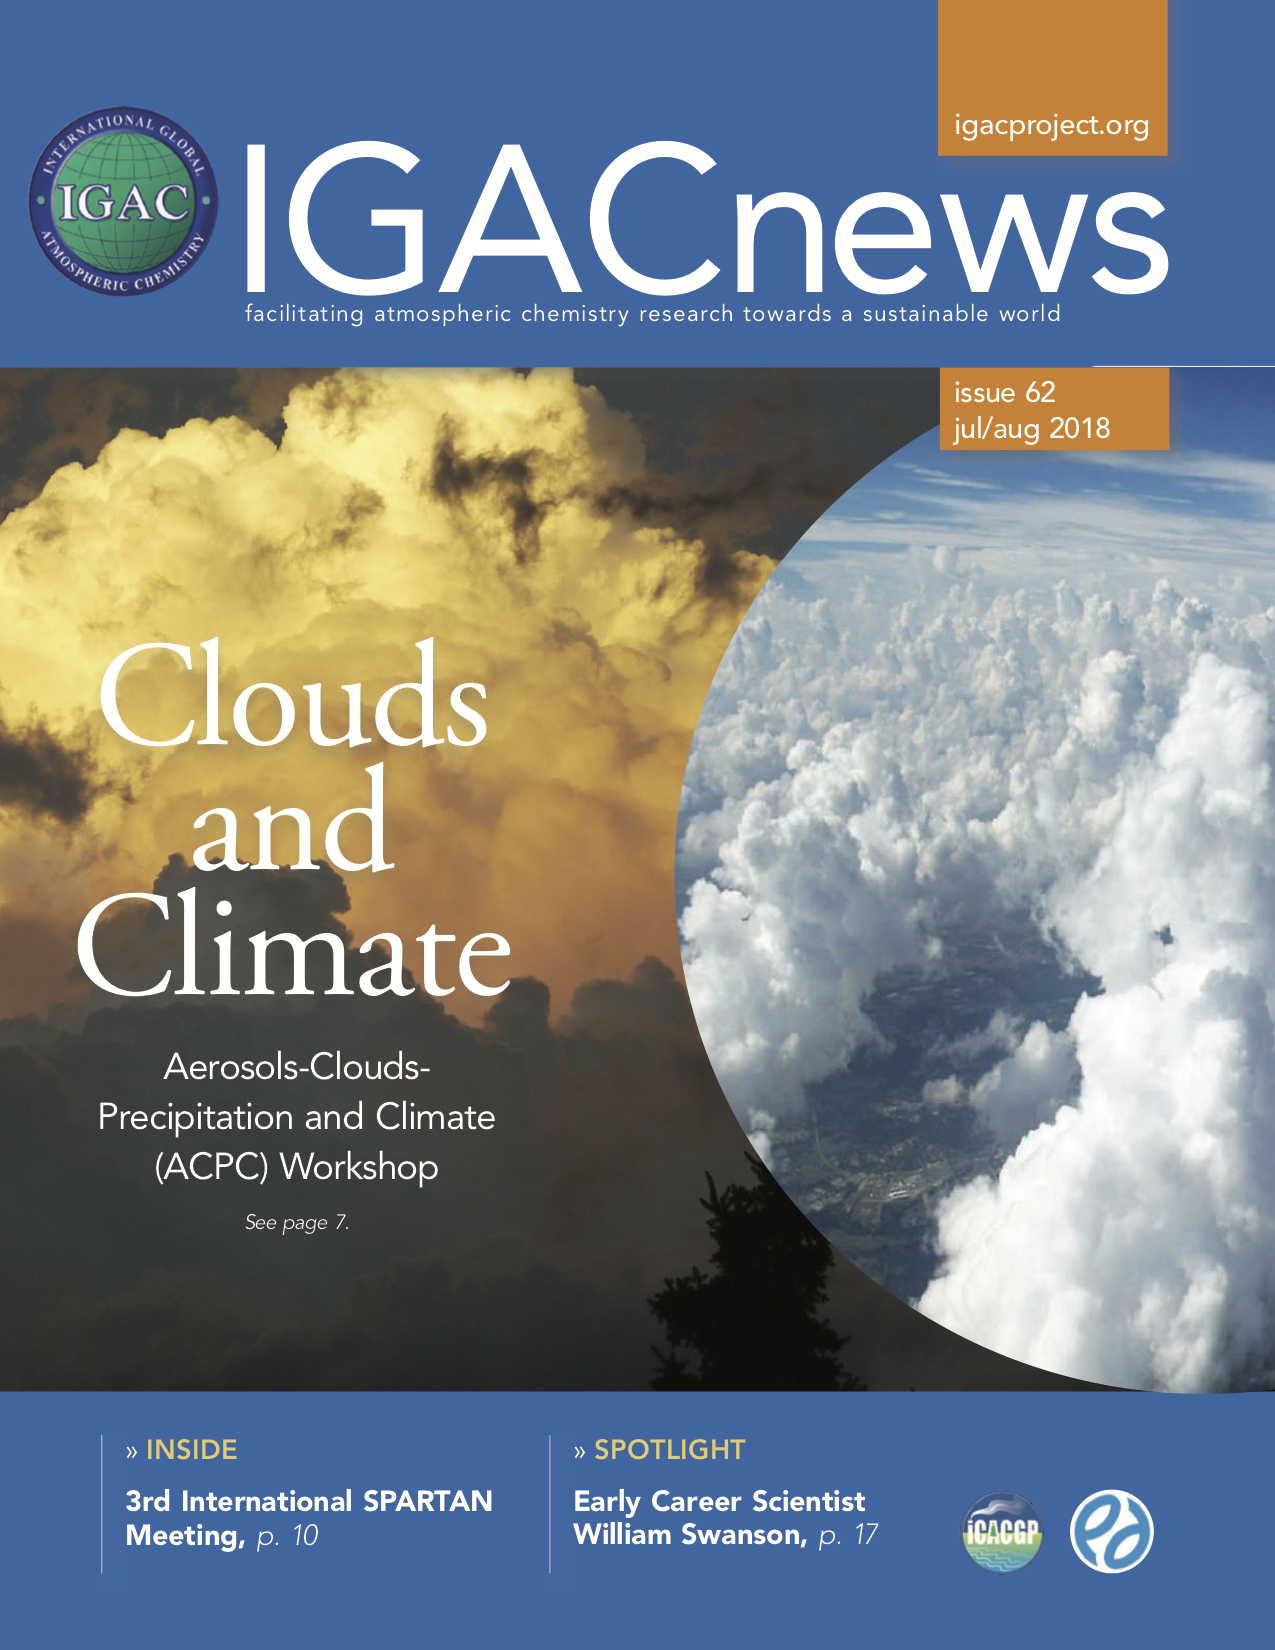 IGACnews Cover